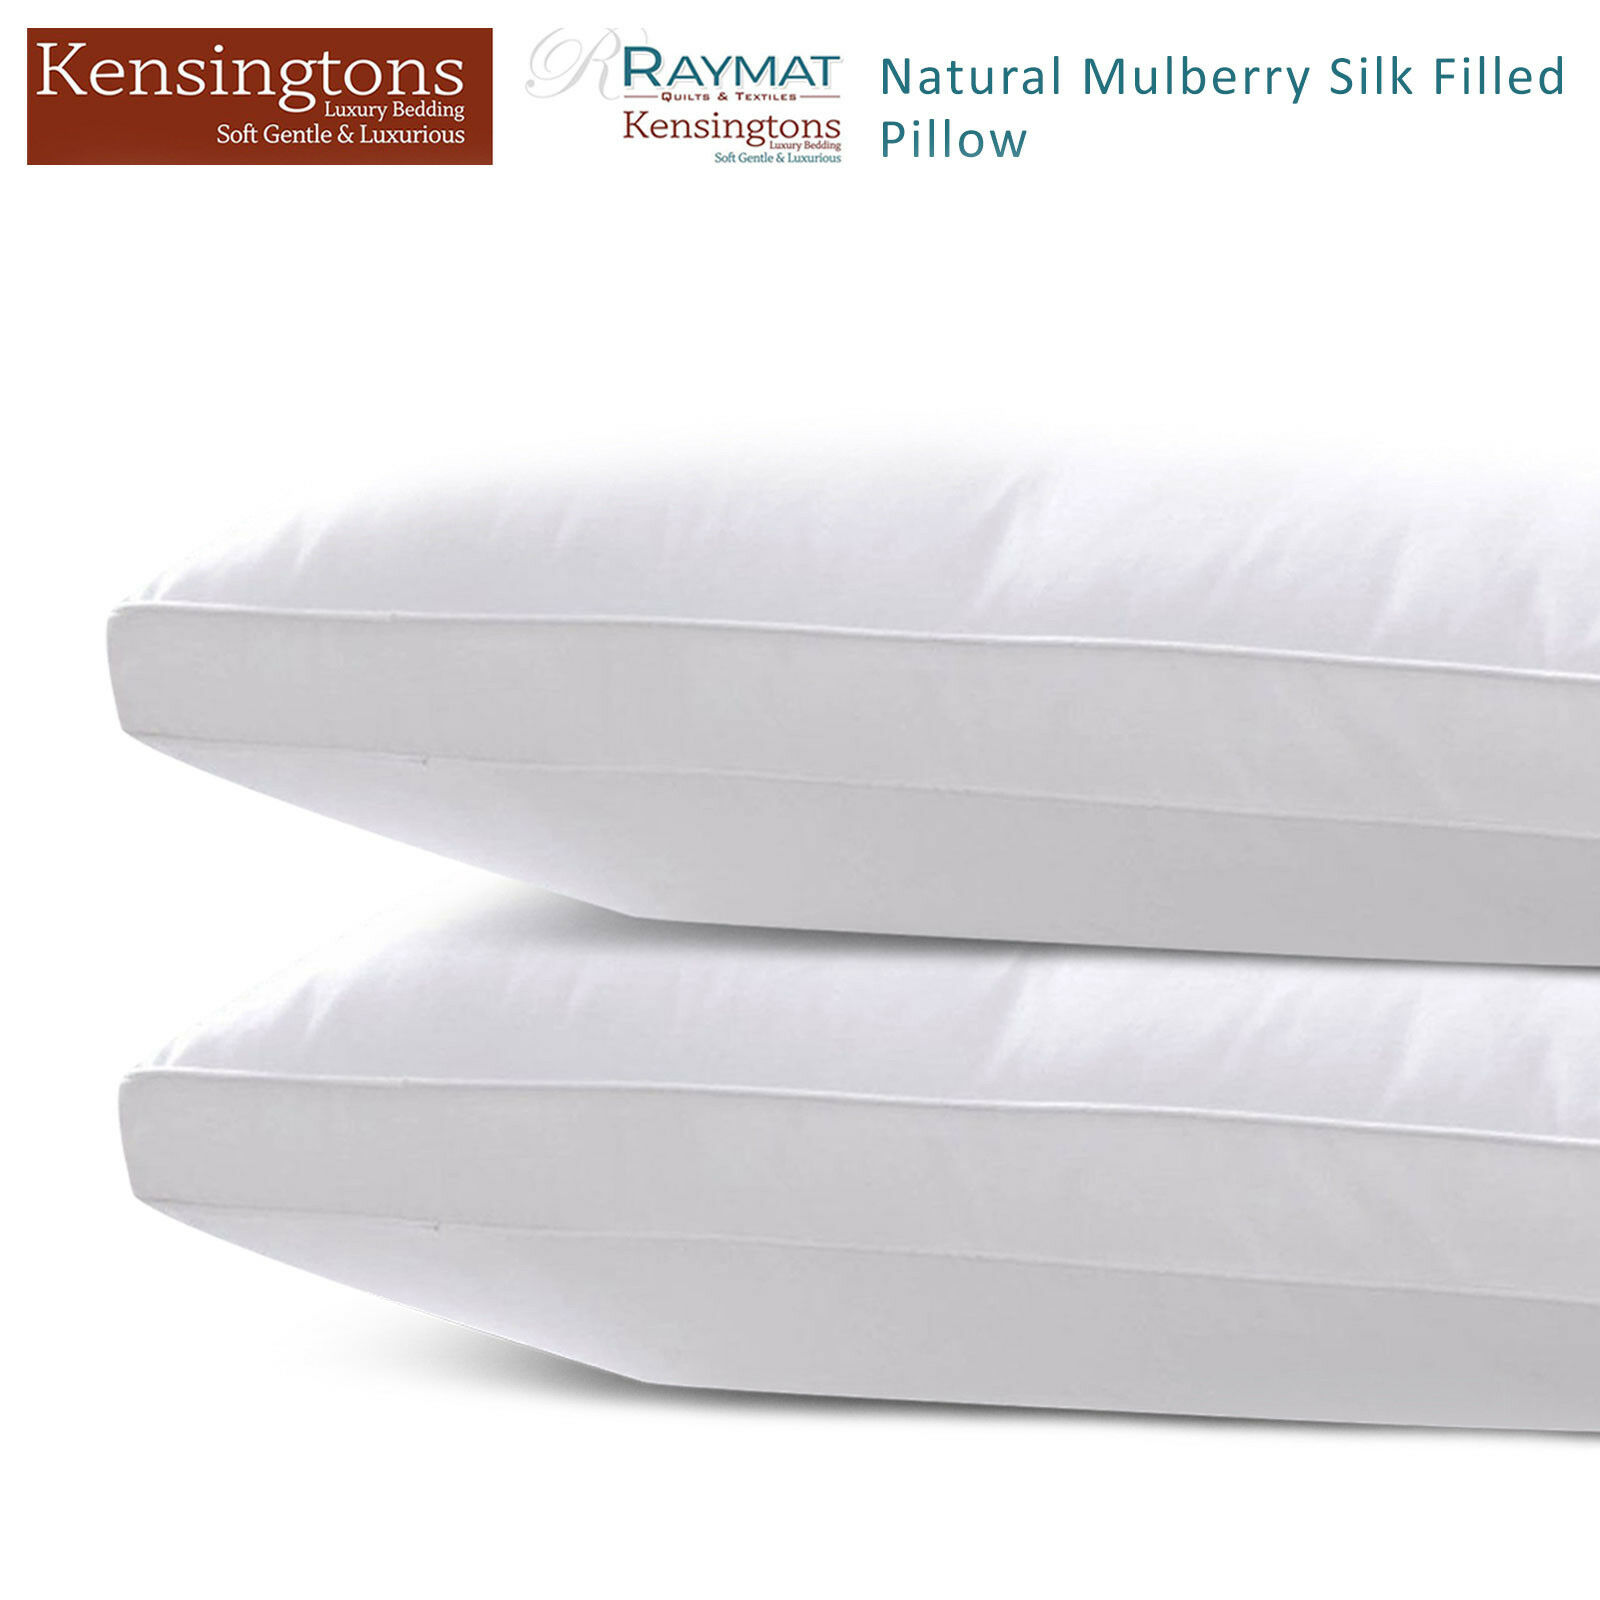 100% Soft Silk Mulberry Pillow 400 TC Filled Luxury Hotel Quality Bed Pillows